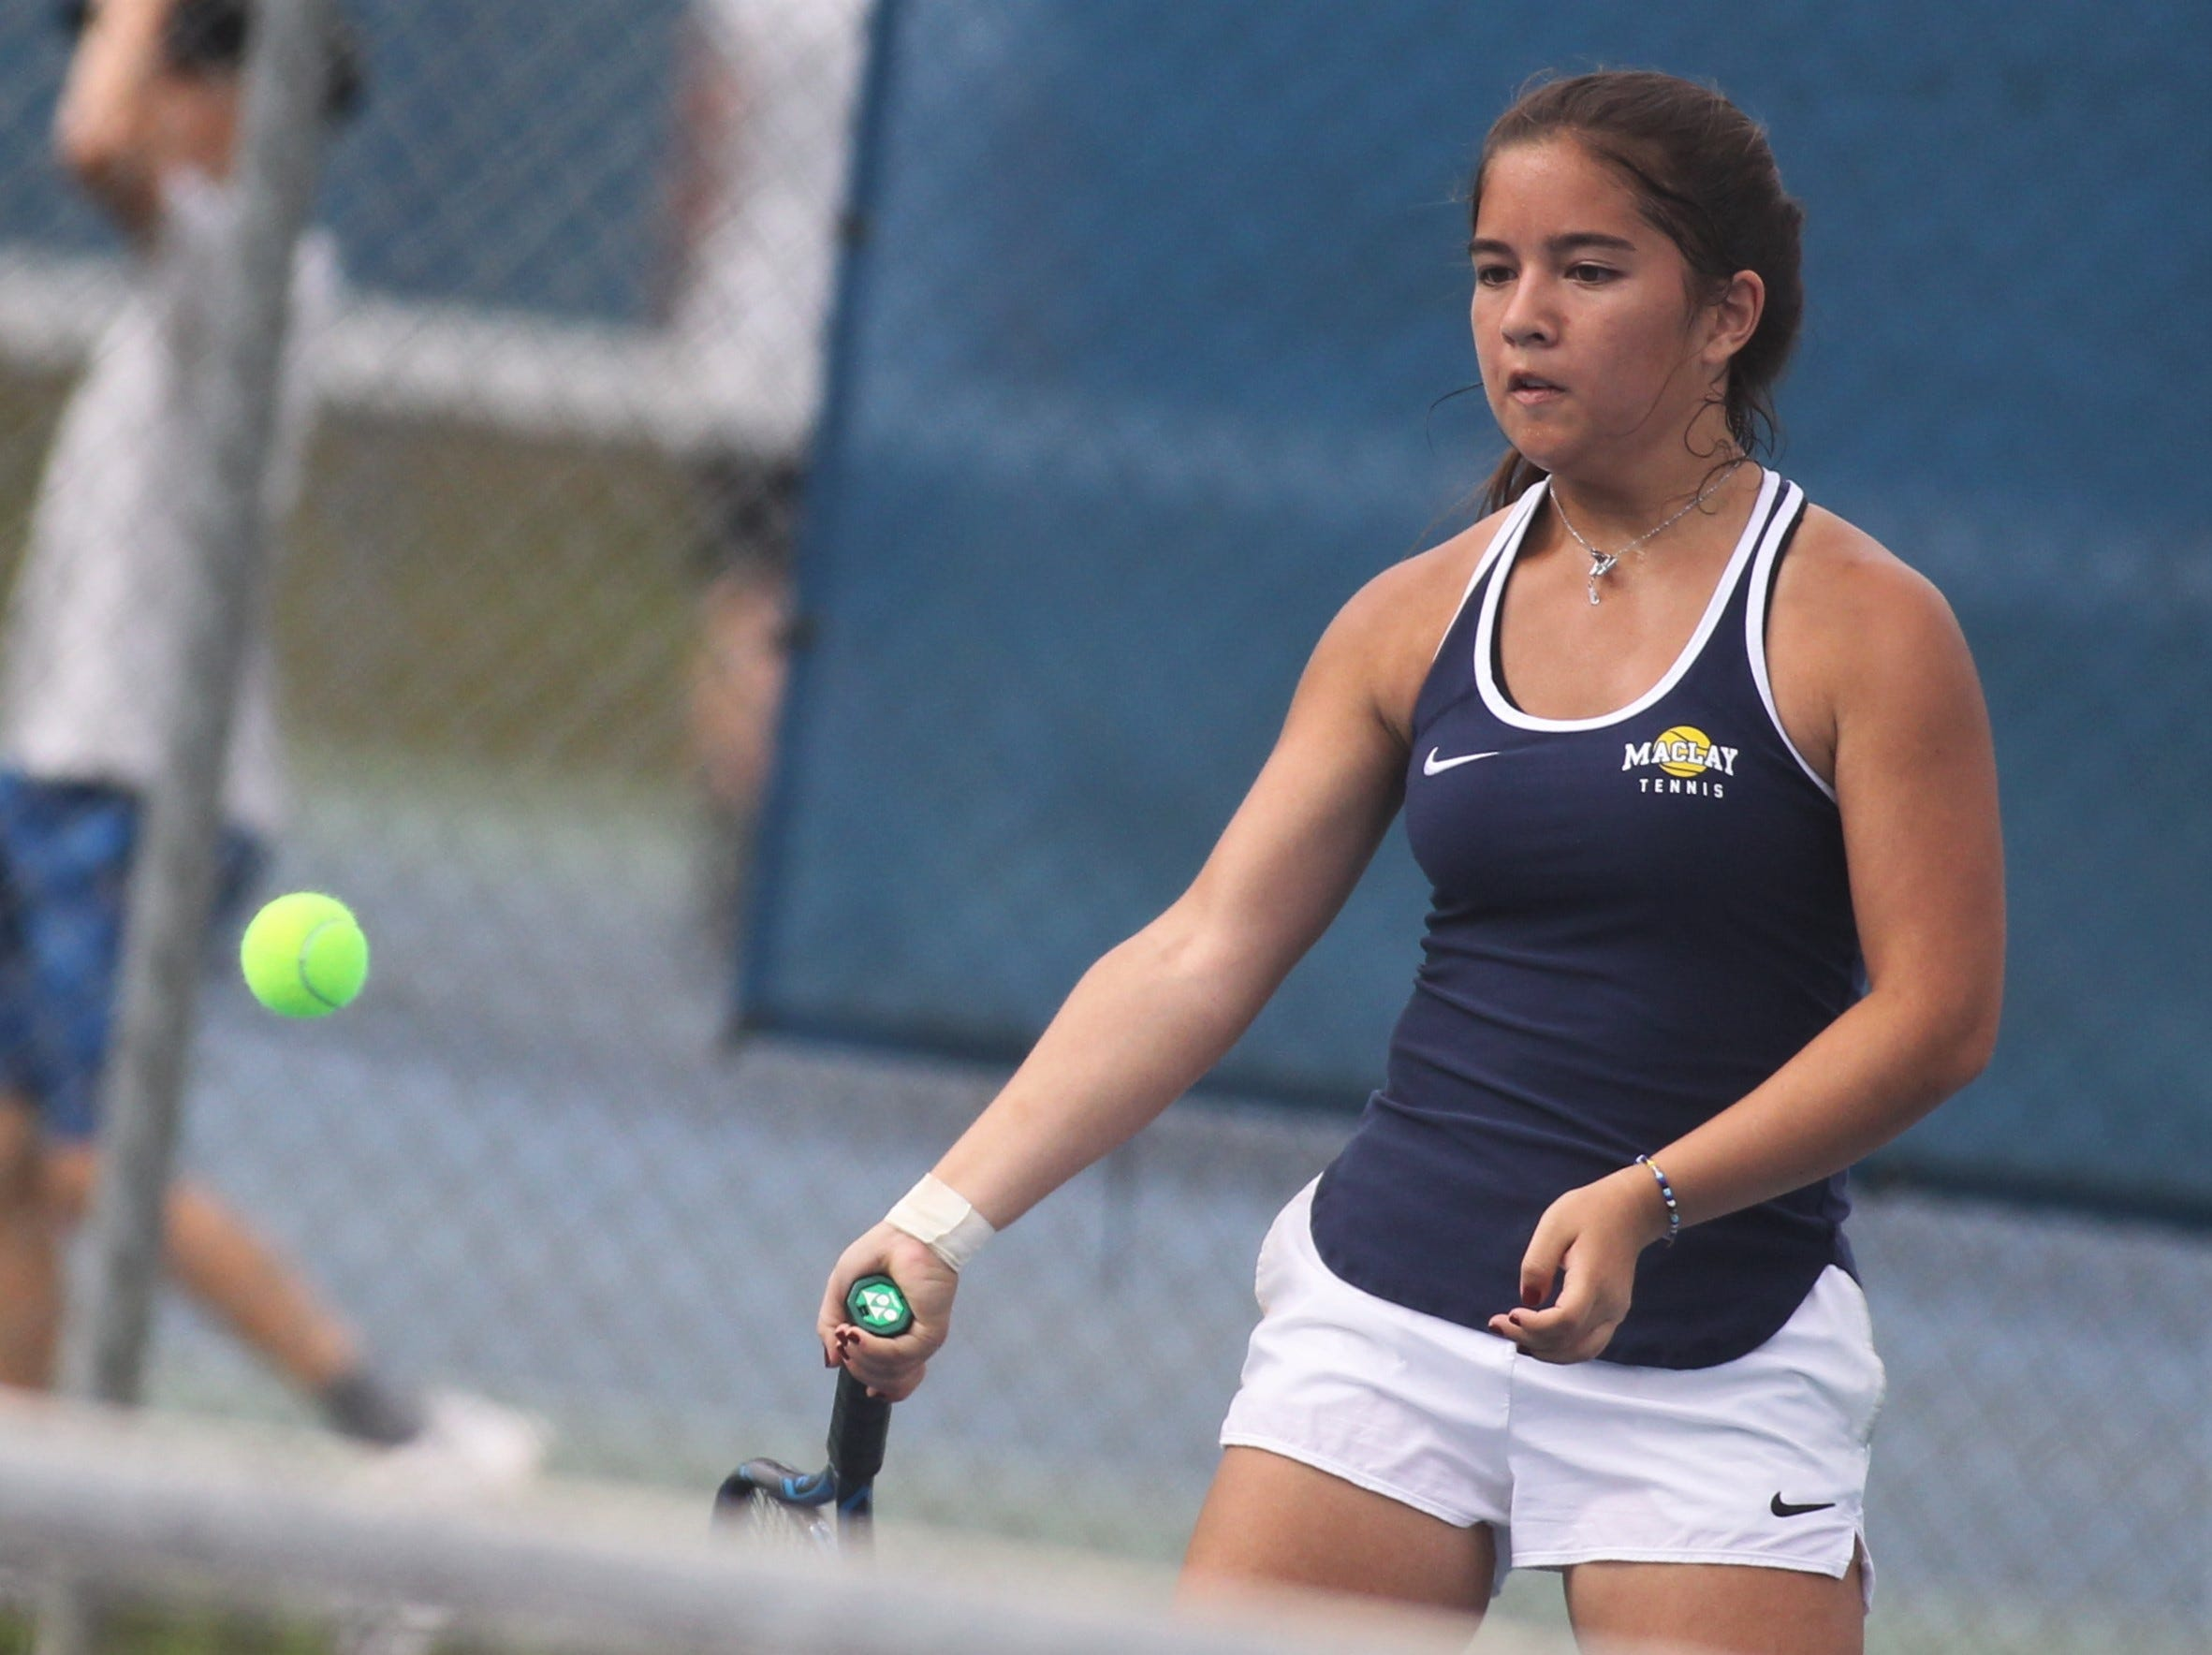 Maclay's Bella Snider plays during the high school boys and girls city tennis tournament at Tom Brown Park on Thursday, March 14, 2019.